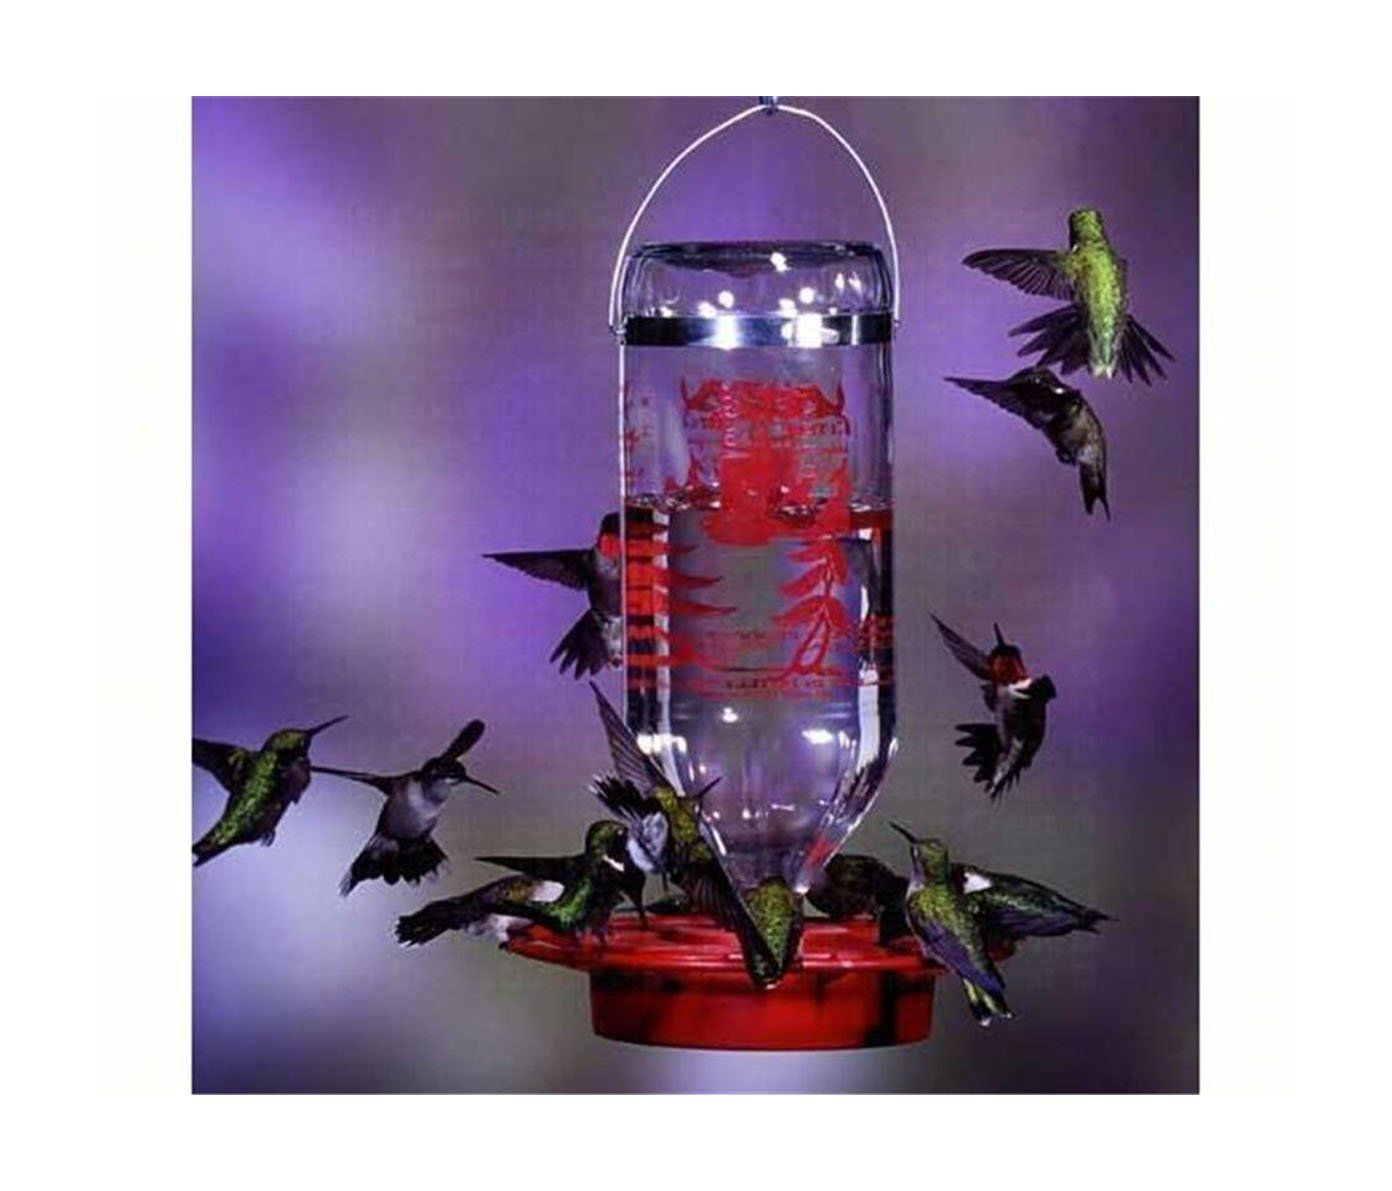 BEST-1 HUMMINGBIRD FEEDER w/32 oz. GLASS BOTTLE, Made in USA. BEST-1 HUMMINGBIRD FEEDER with 32 oz. GLASS BOTTLE. The Original Best-1 Hummingbird Feeder 32 oz. with Glass bottle, bee/wasp proof, built-in perch, & 8 feeding stations. Replacement parts available, base separates for easier cleaning, no O ring required, will not rust, ready to hang. Made In The USA.